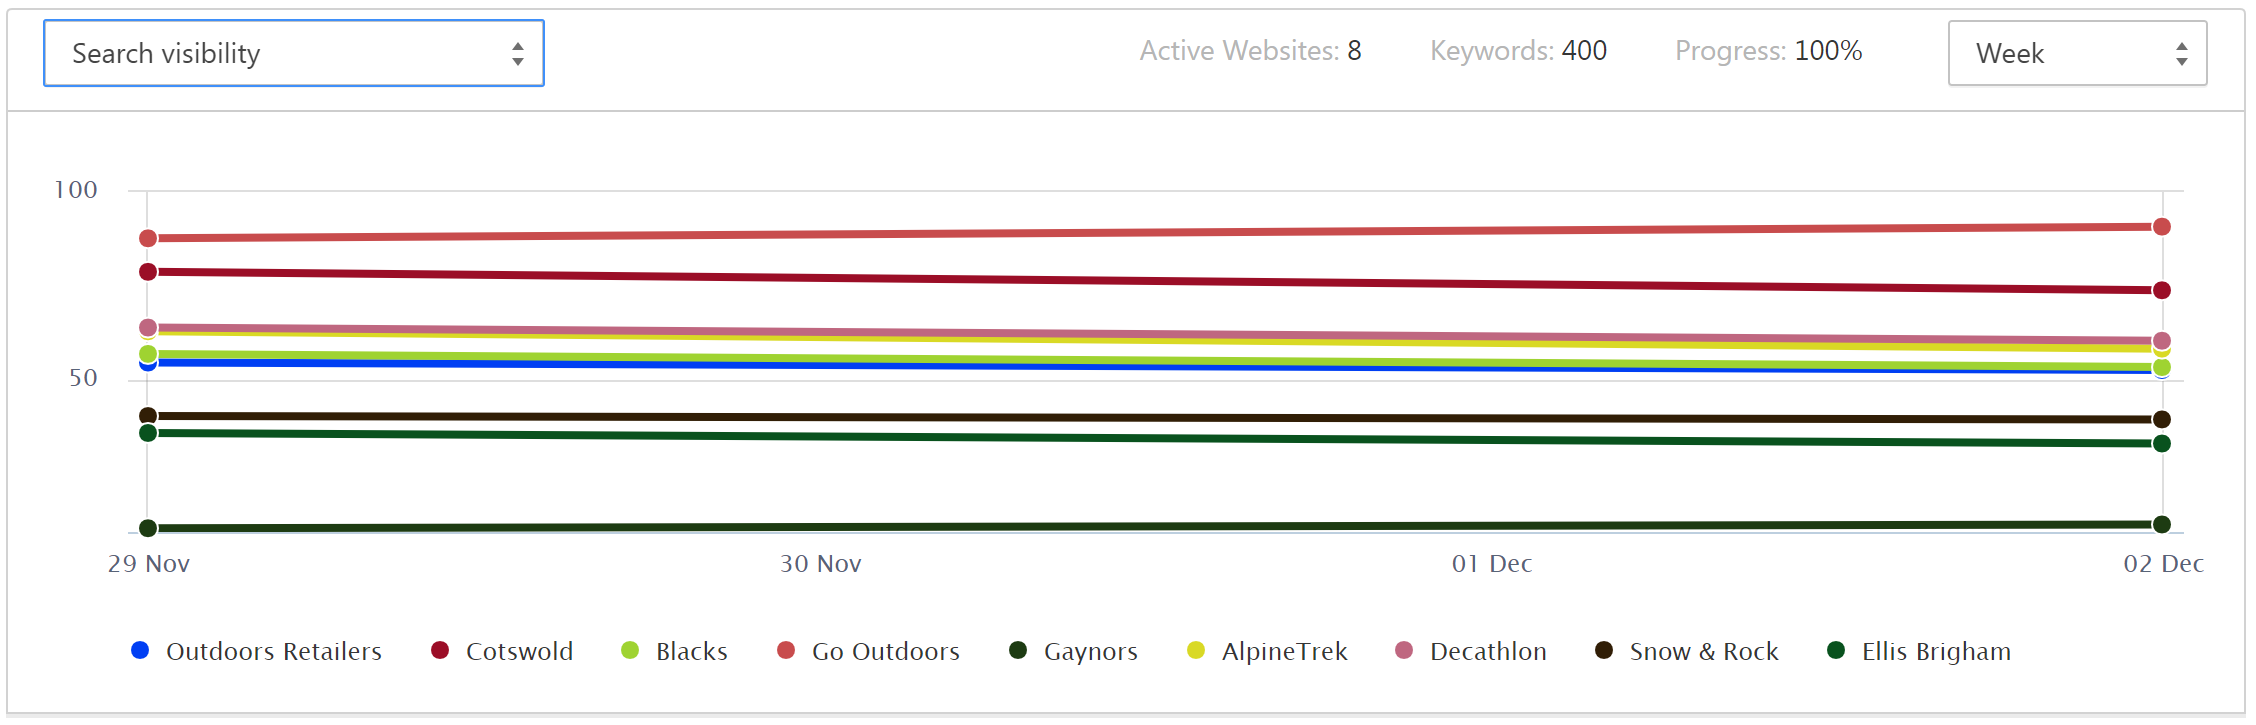 Outdoor Gear Retailers - Search Visibility Cyber Week 2018